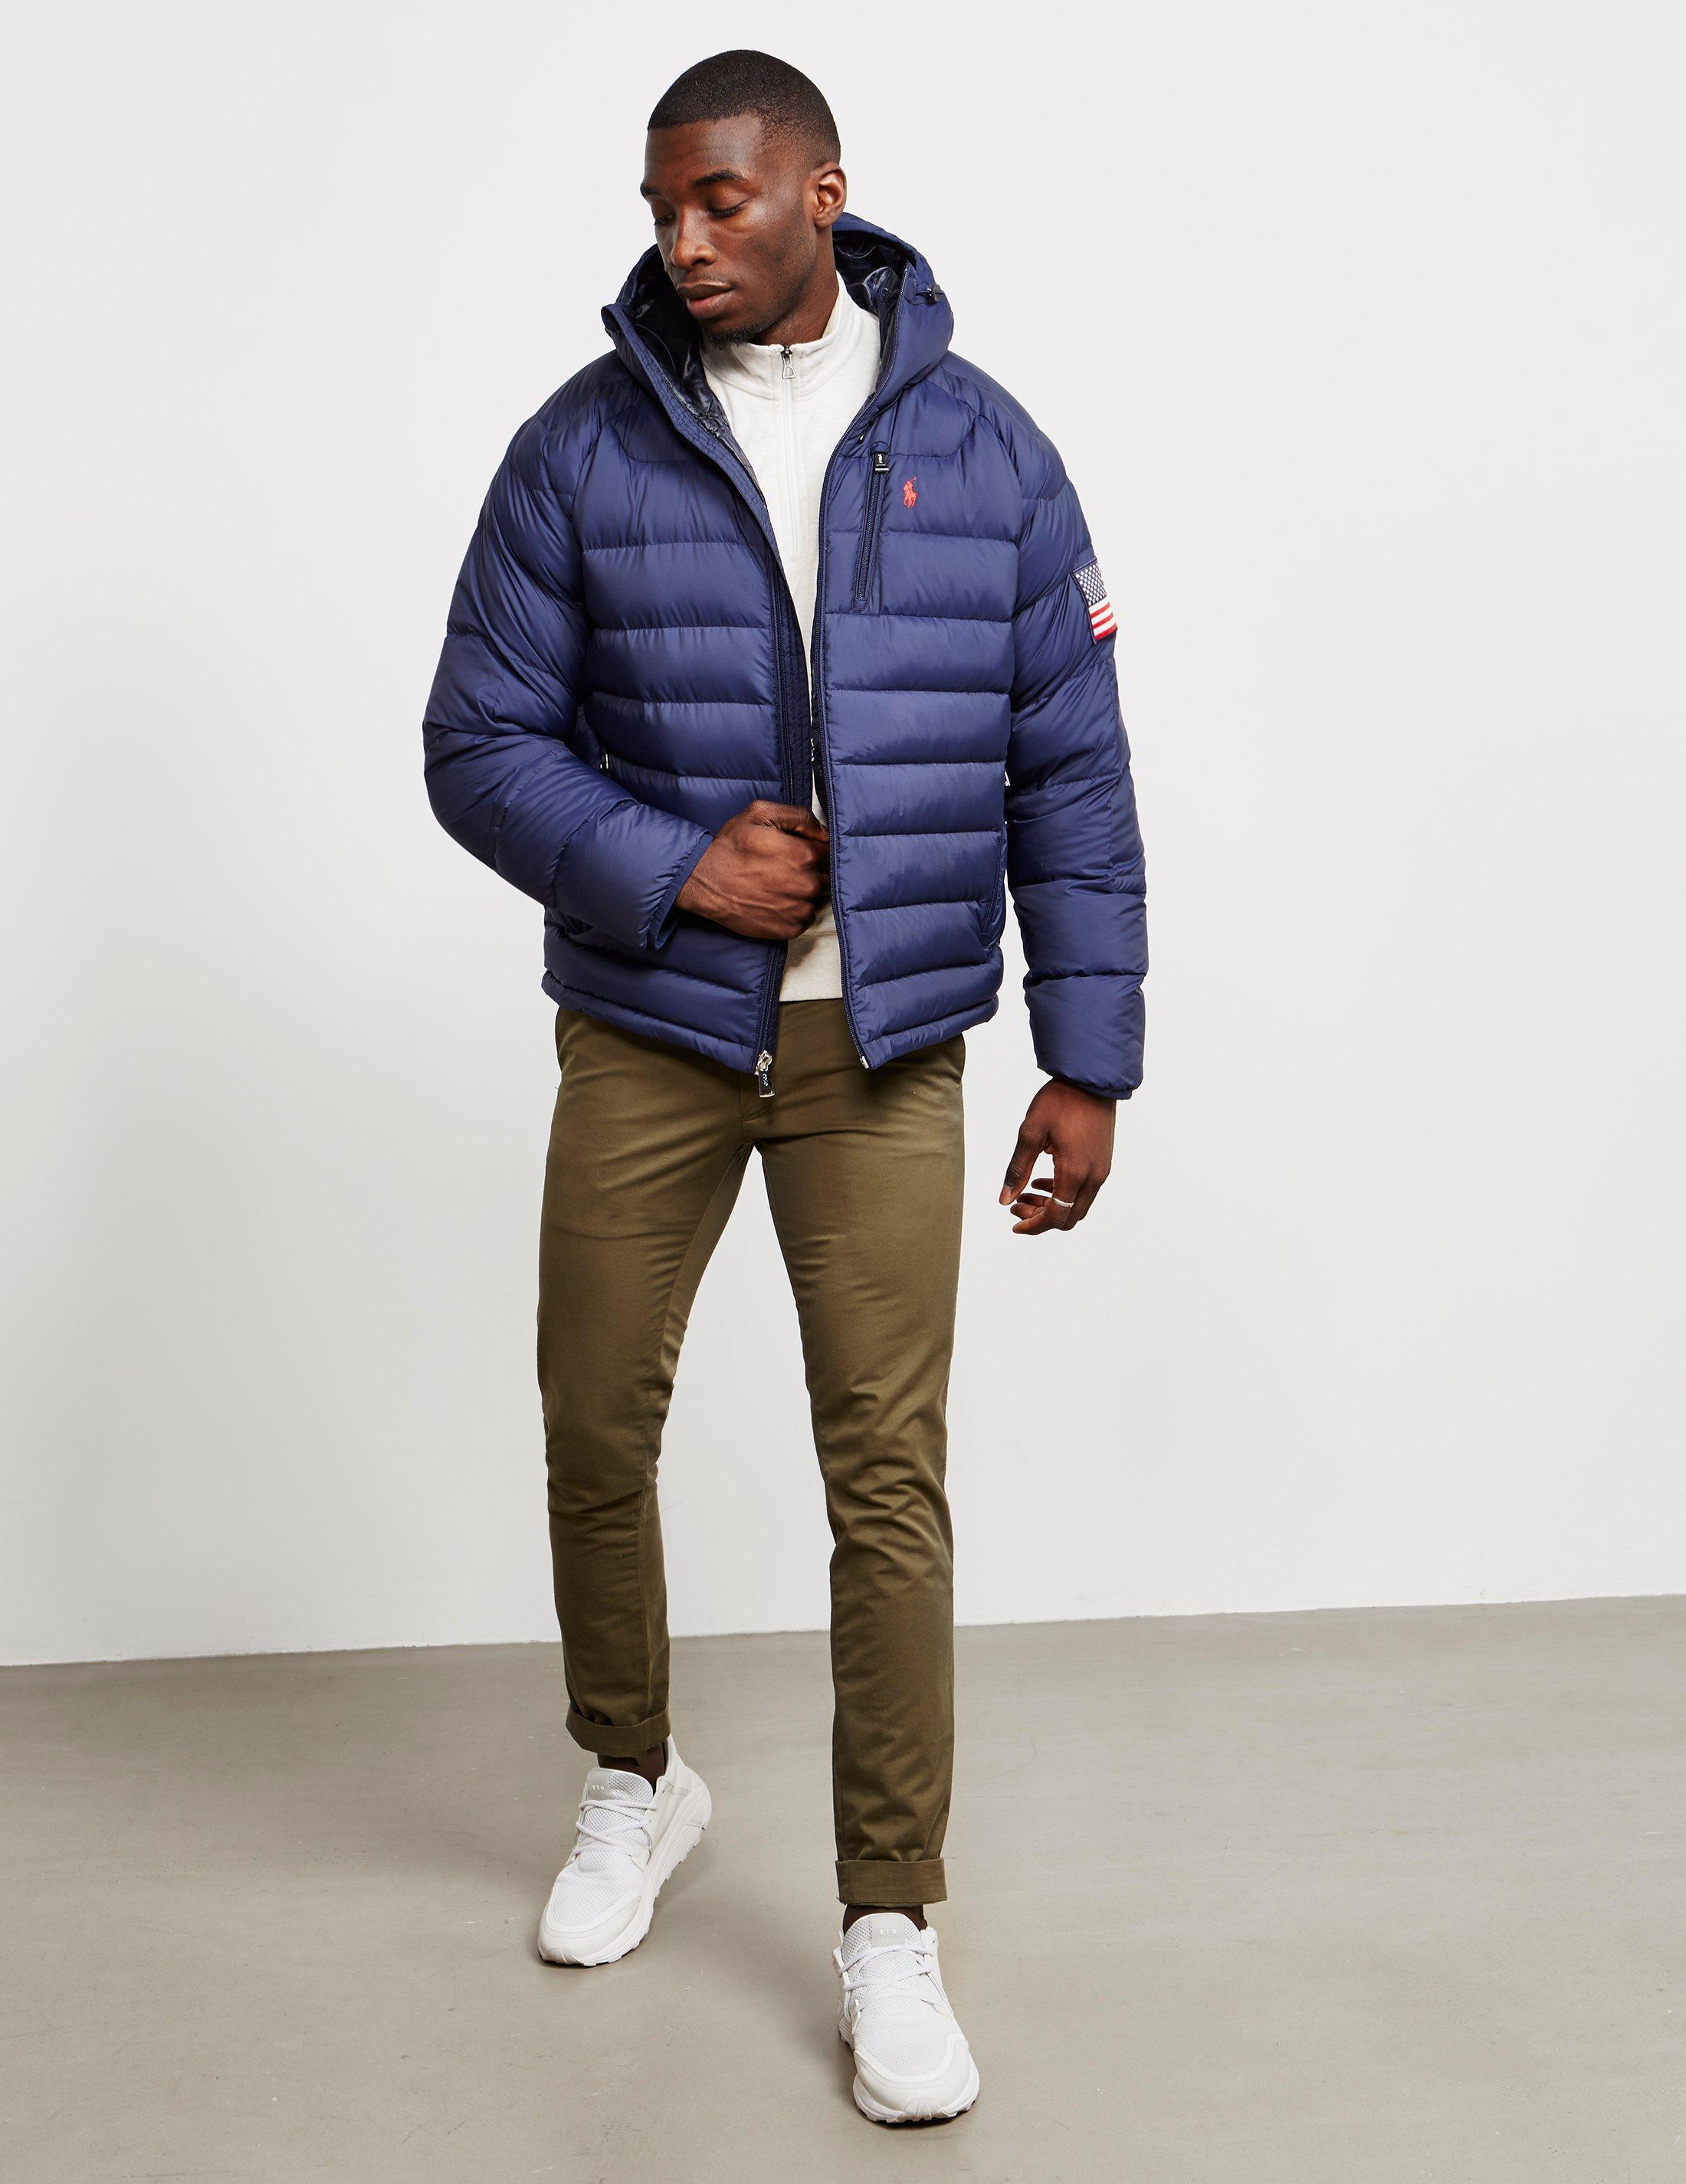 6f178b6acd67 Lyst - Polo Ralph Lauren Glacier Heated Down Jacket Navy Blue in Blue for  Men